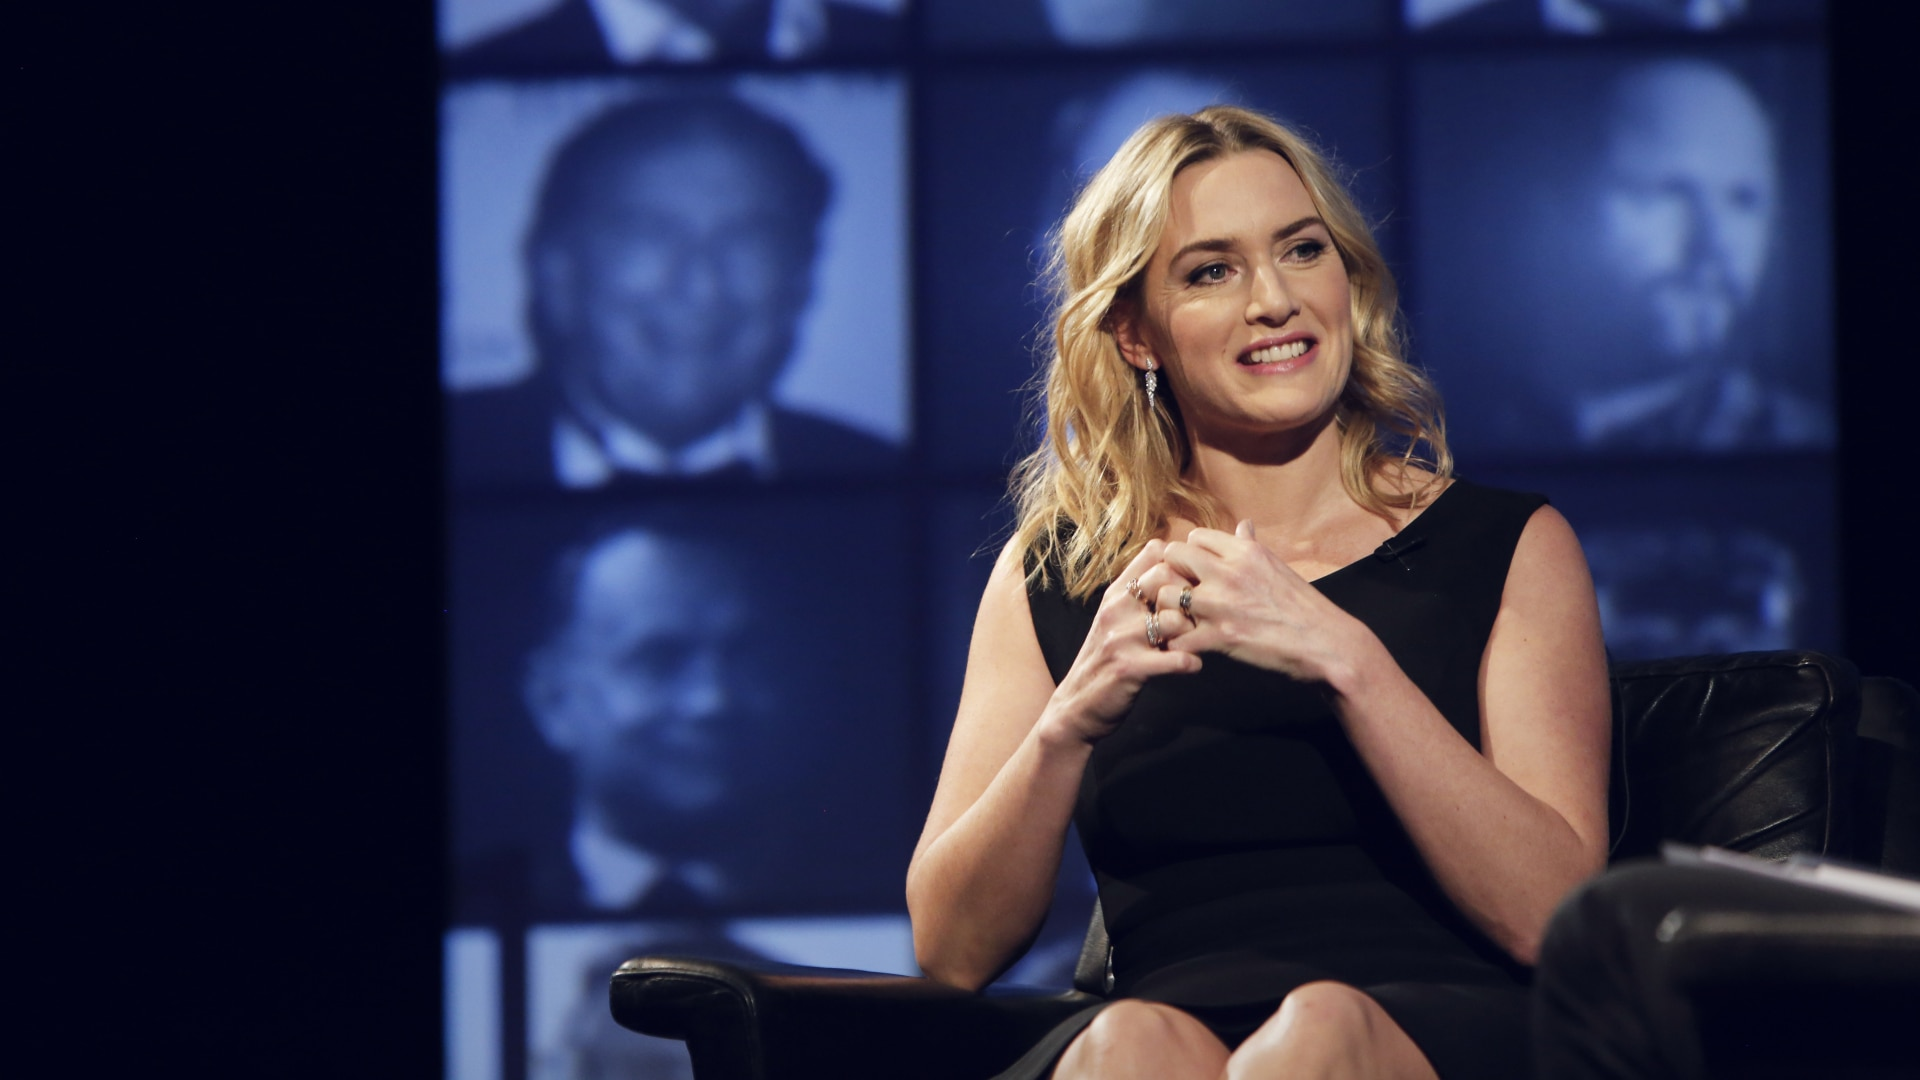 BAFTA: Kate Winslet Life in Pictures